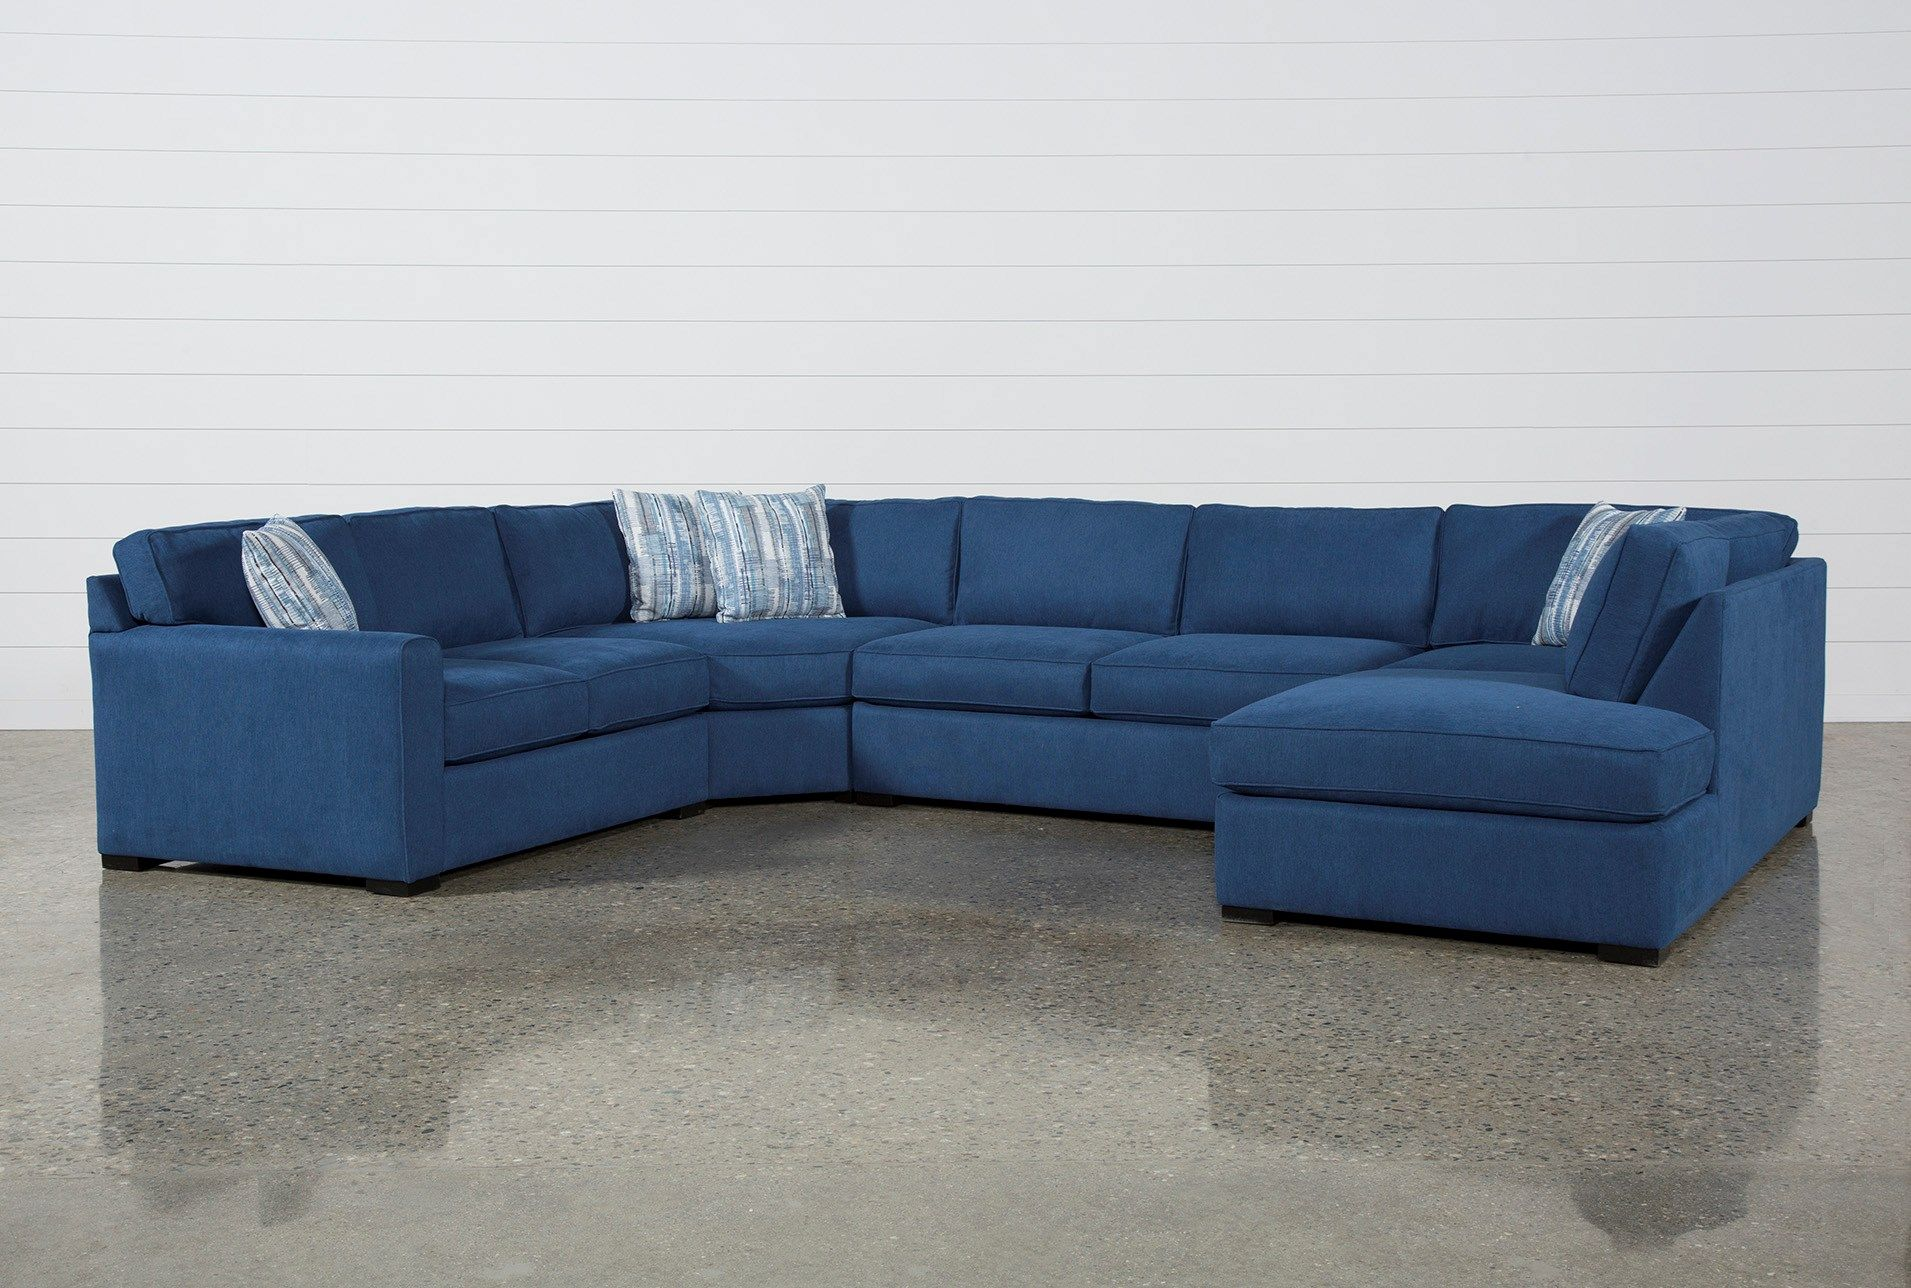 Tremendous Cypress Grande 4 Piece Sectional House Sleeper Couch Download Free Architecture Designs Terstmadebymaigaardcom